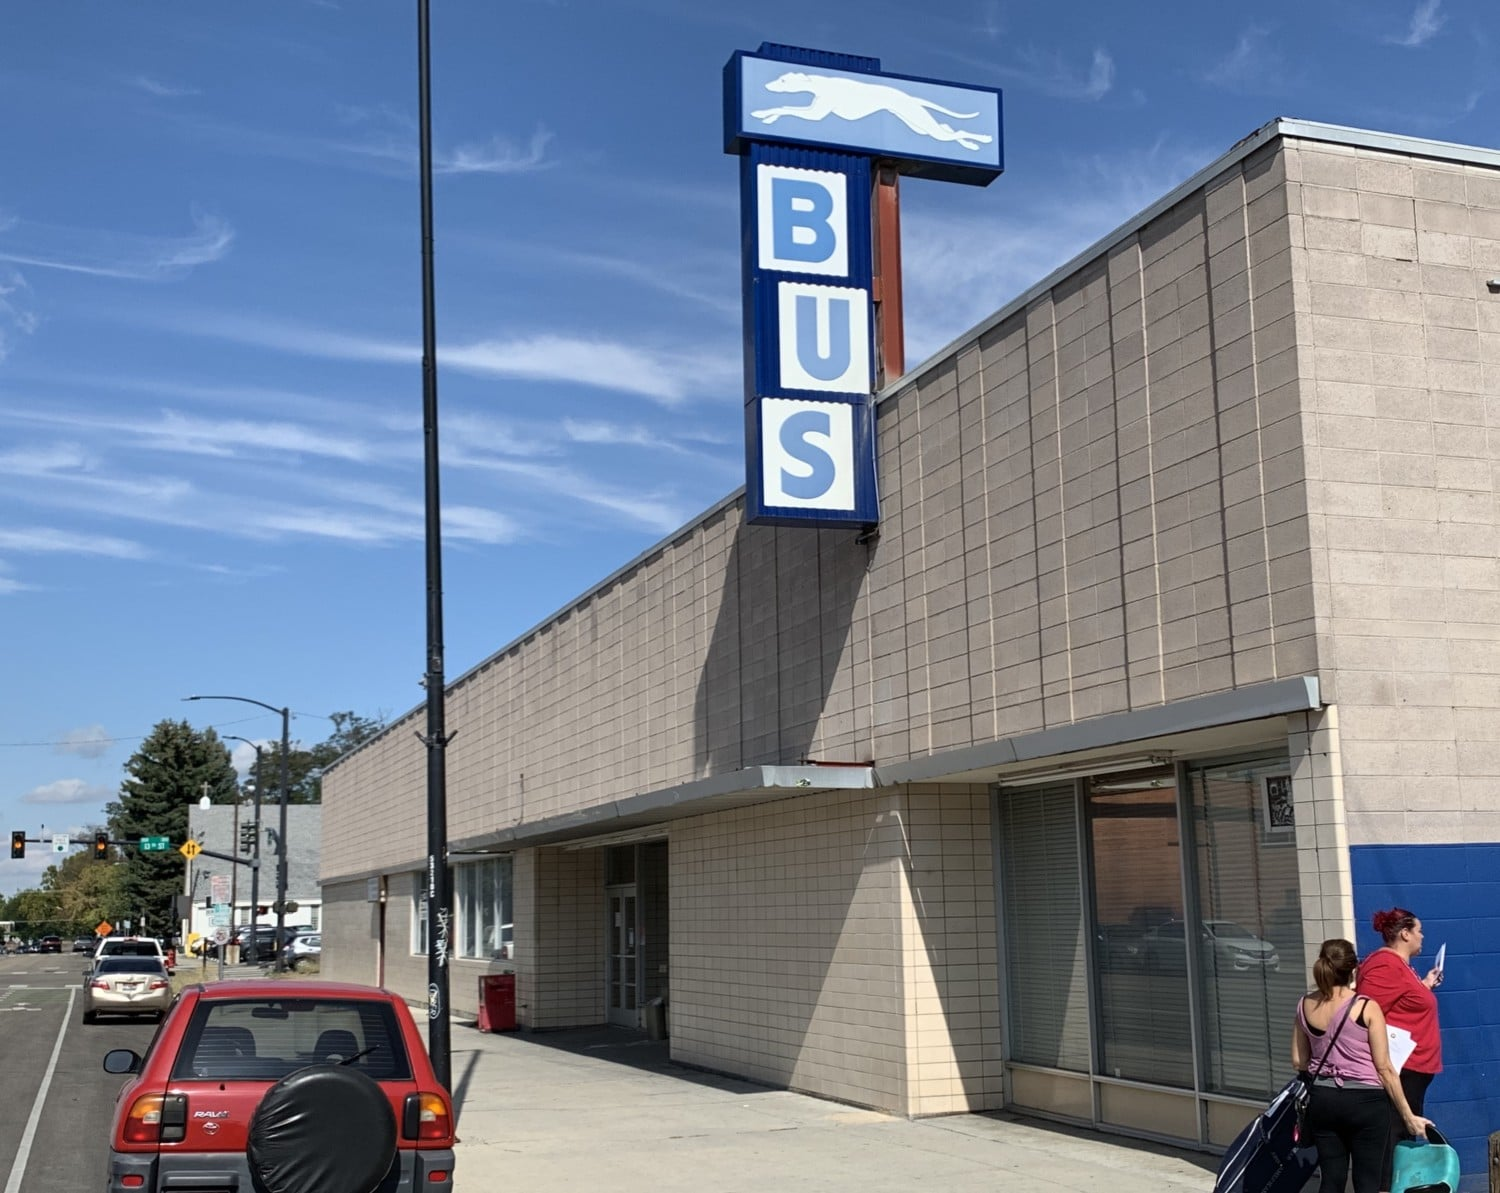 Boise's Greyhound station to leave downtown after 60 years